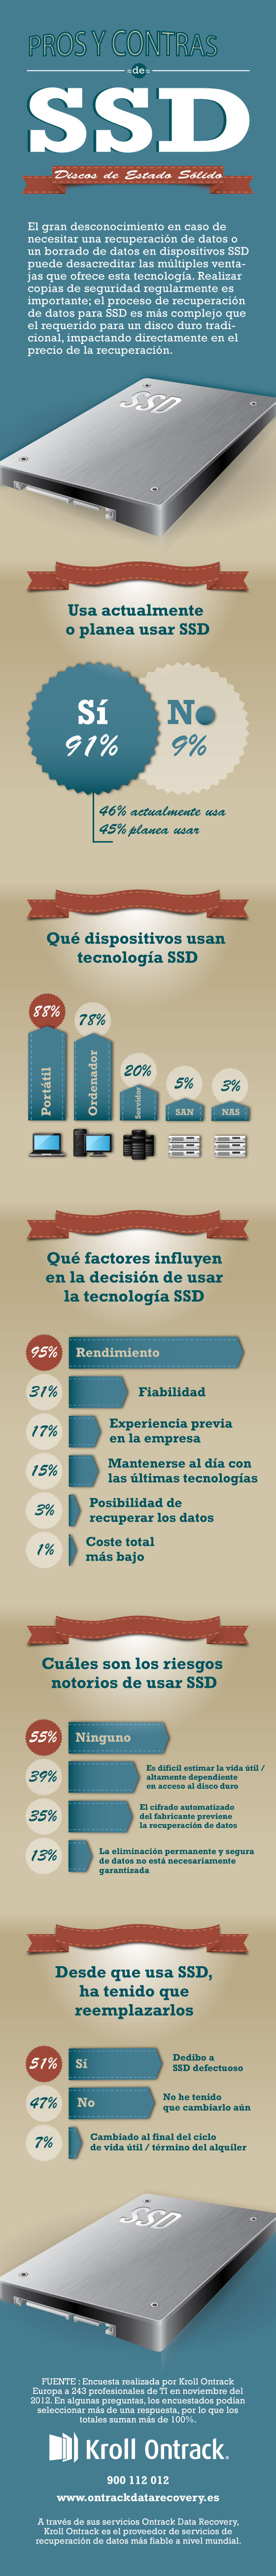 Infographic-SSD-ES